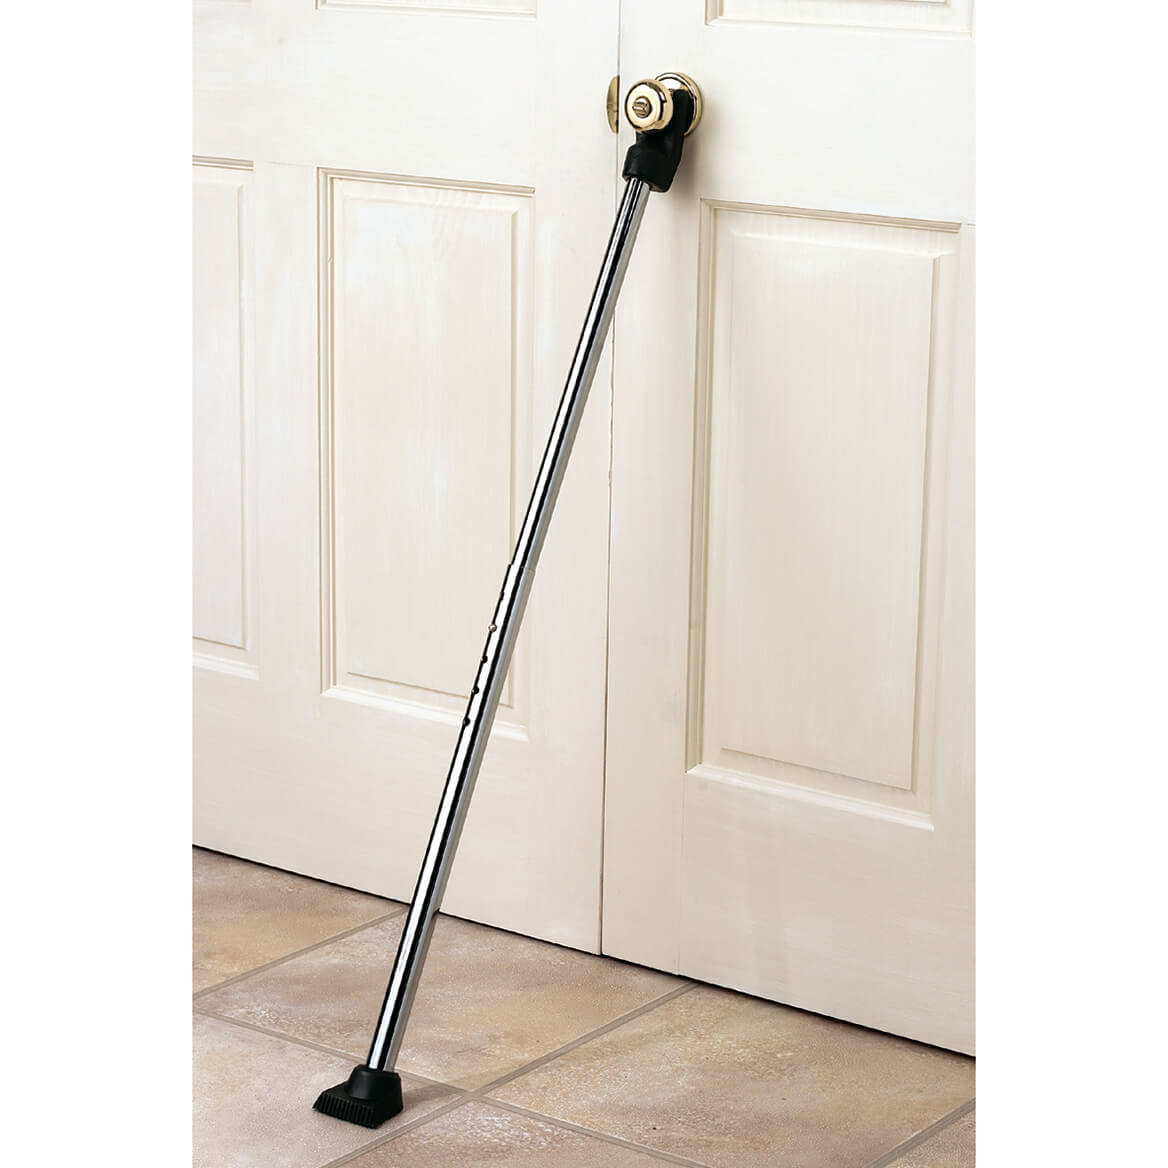 Details About Door Security Bar Home Brace House Strong Portable Safety Lock Apartment